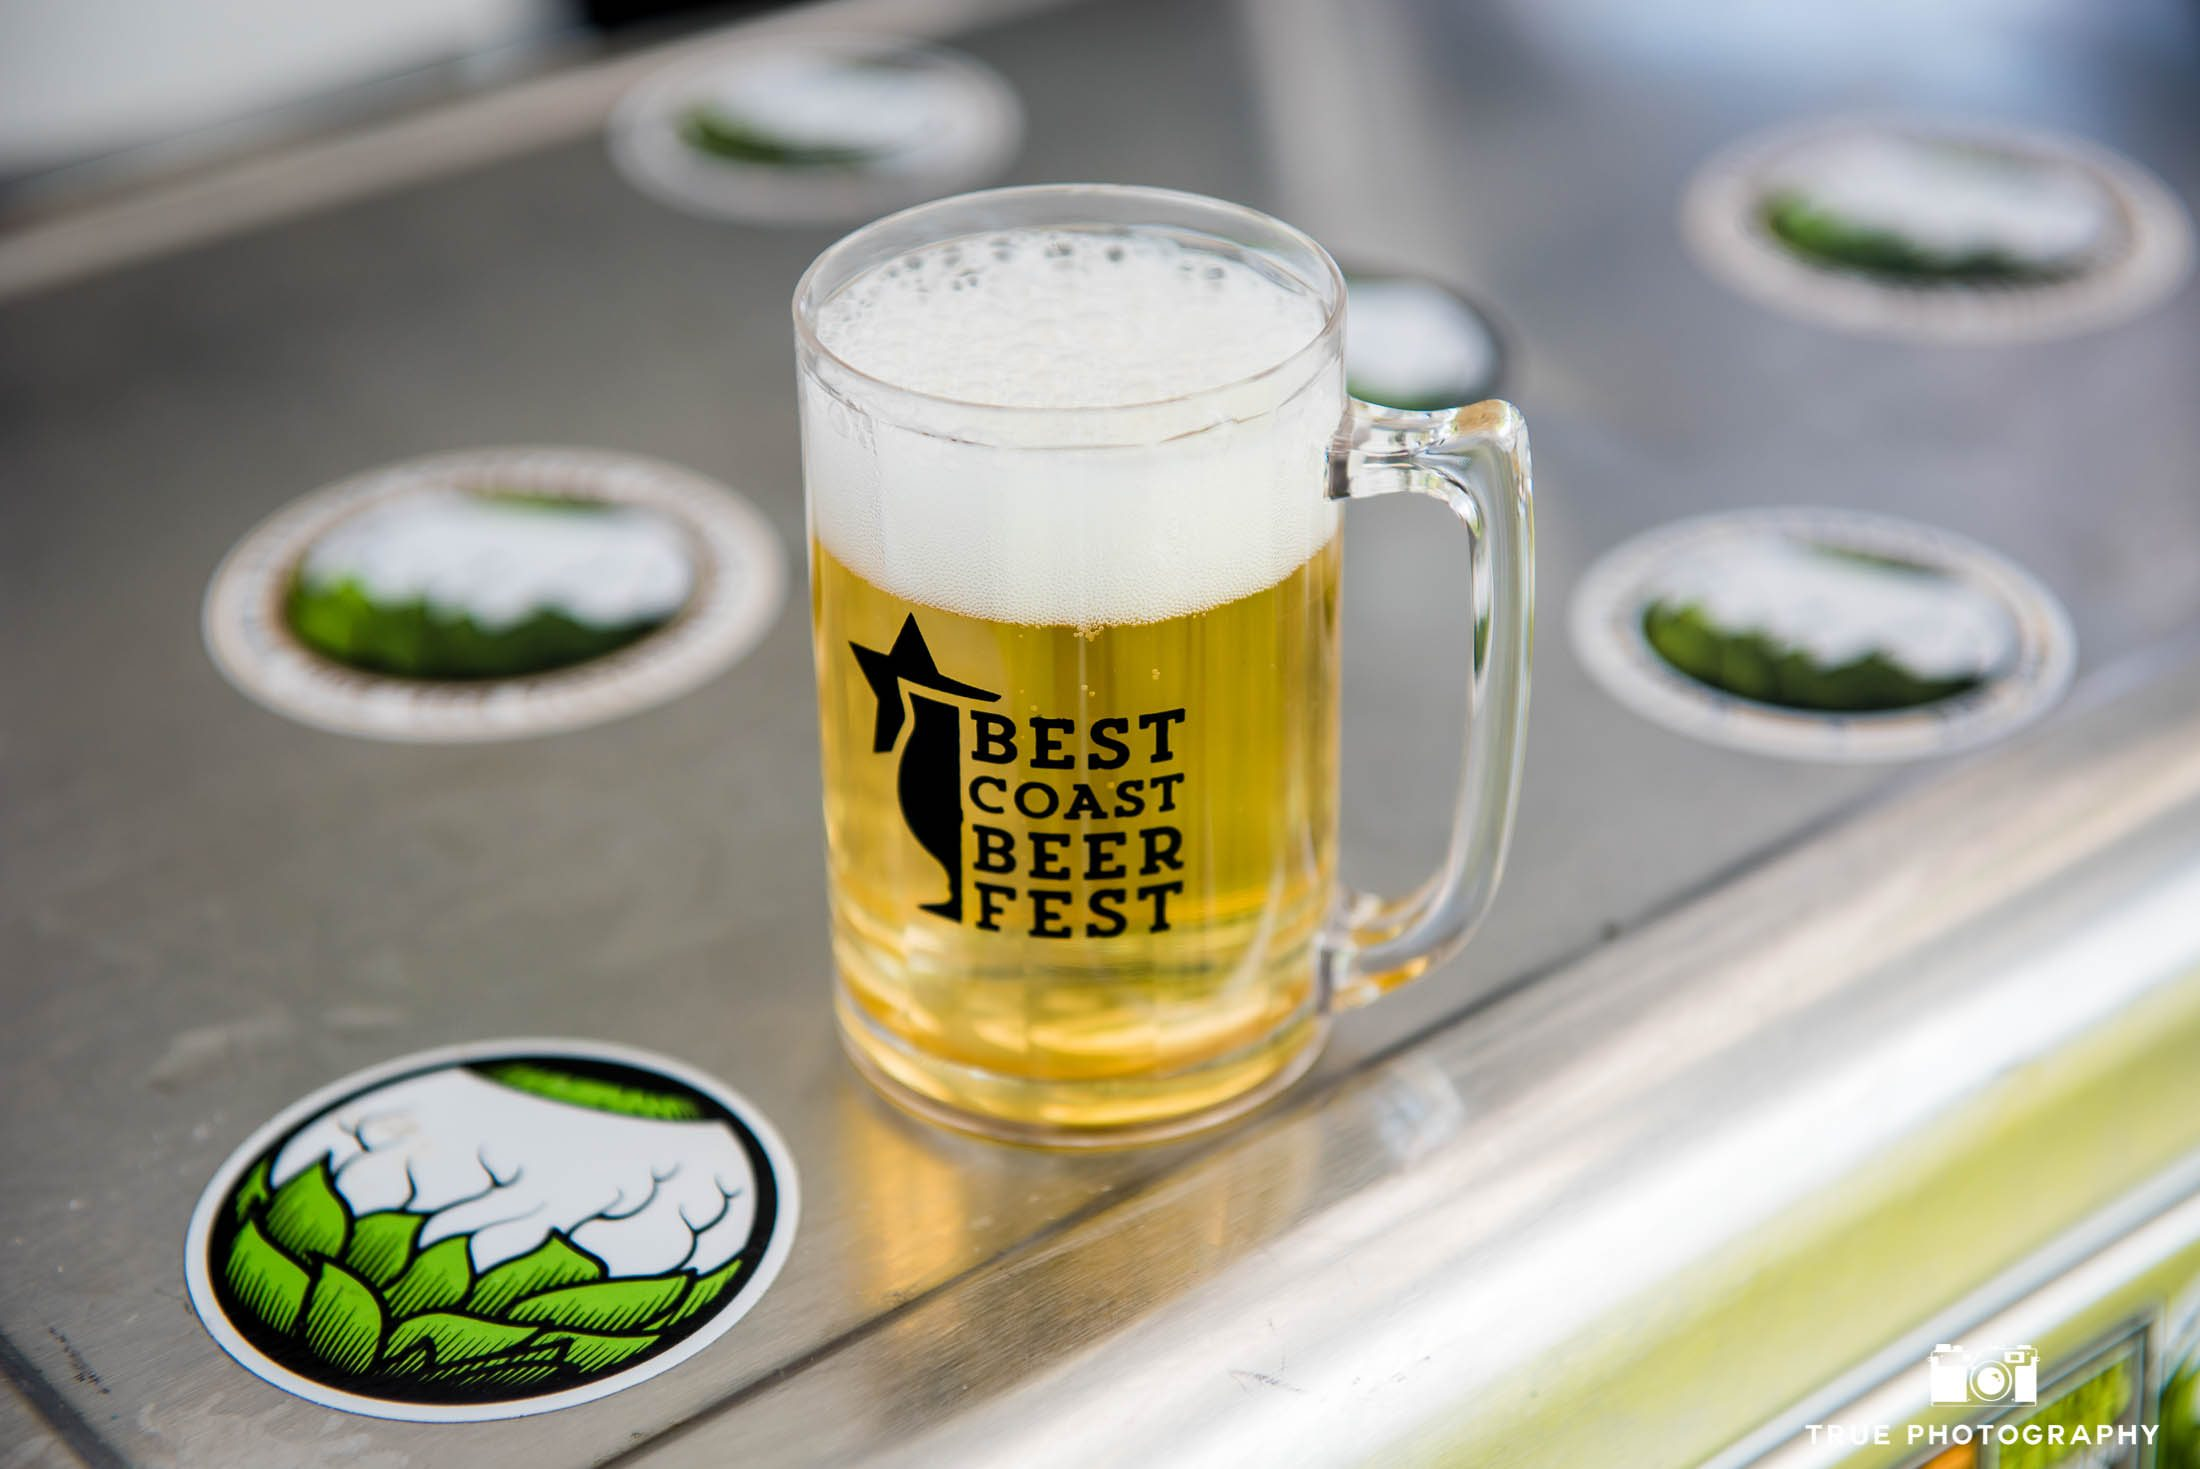 Best Coast Beer Fest Taster Glass filled with beer